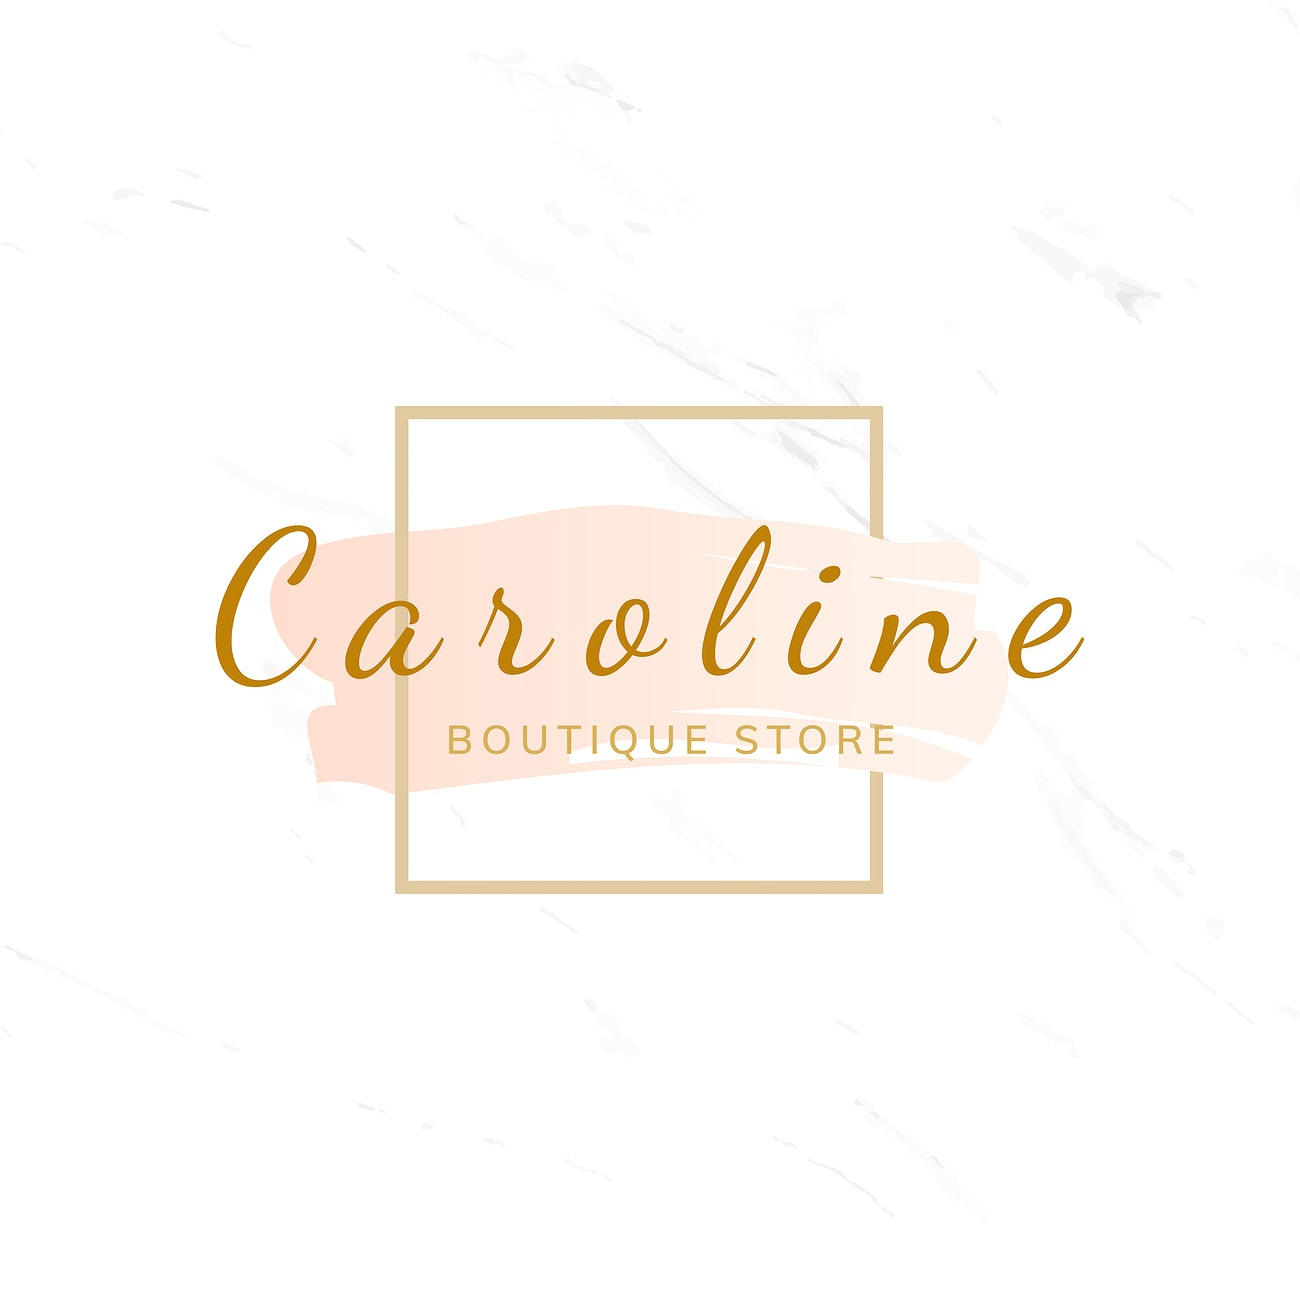 Fashion Boutique Logo Design Vector Royalty Free Vector 524626